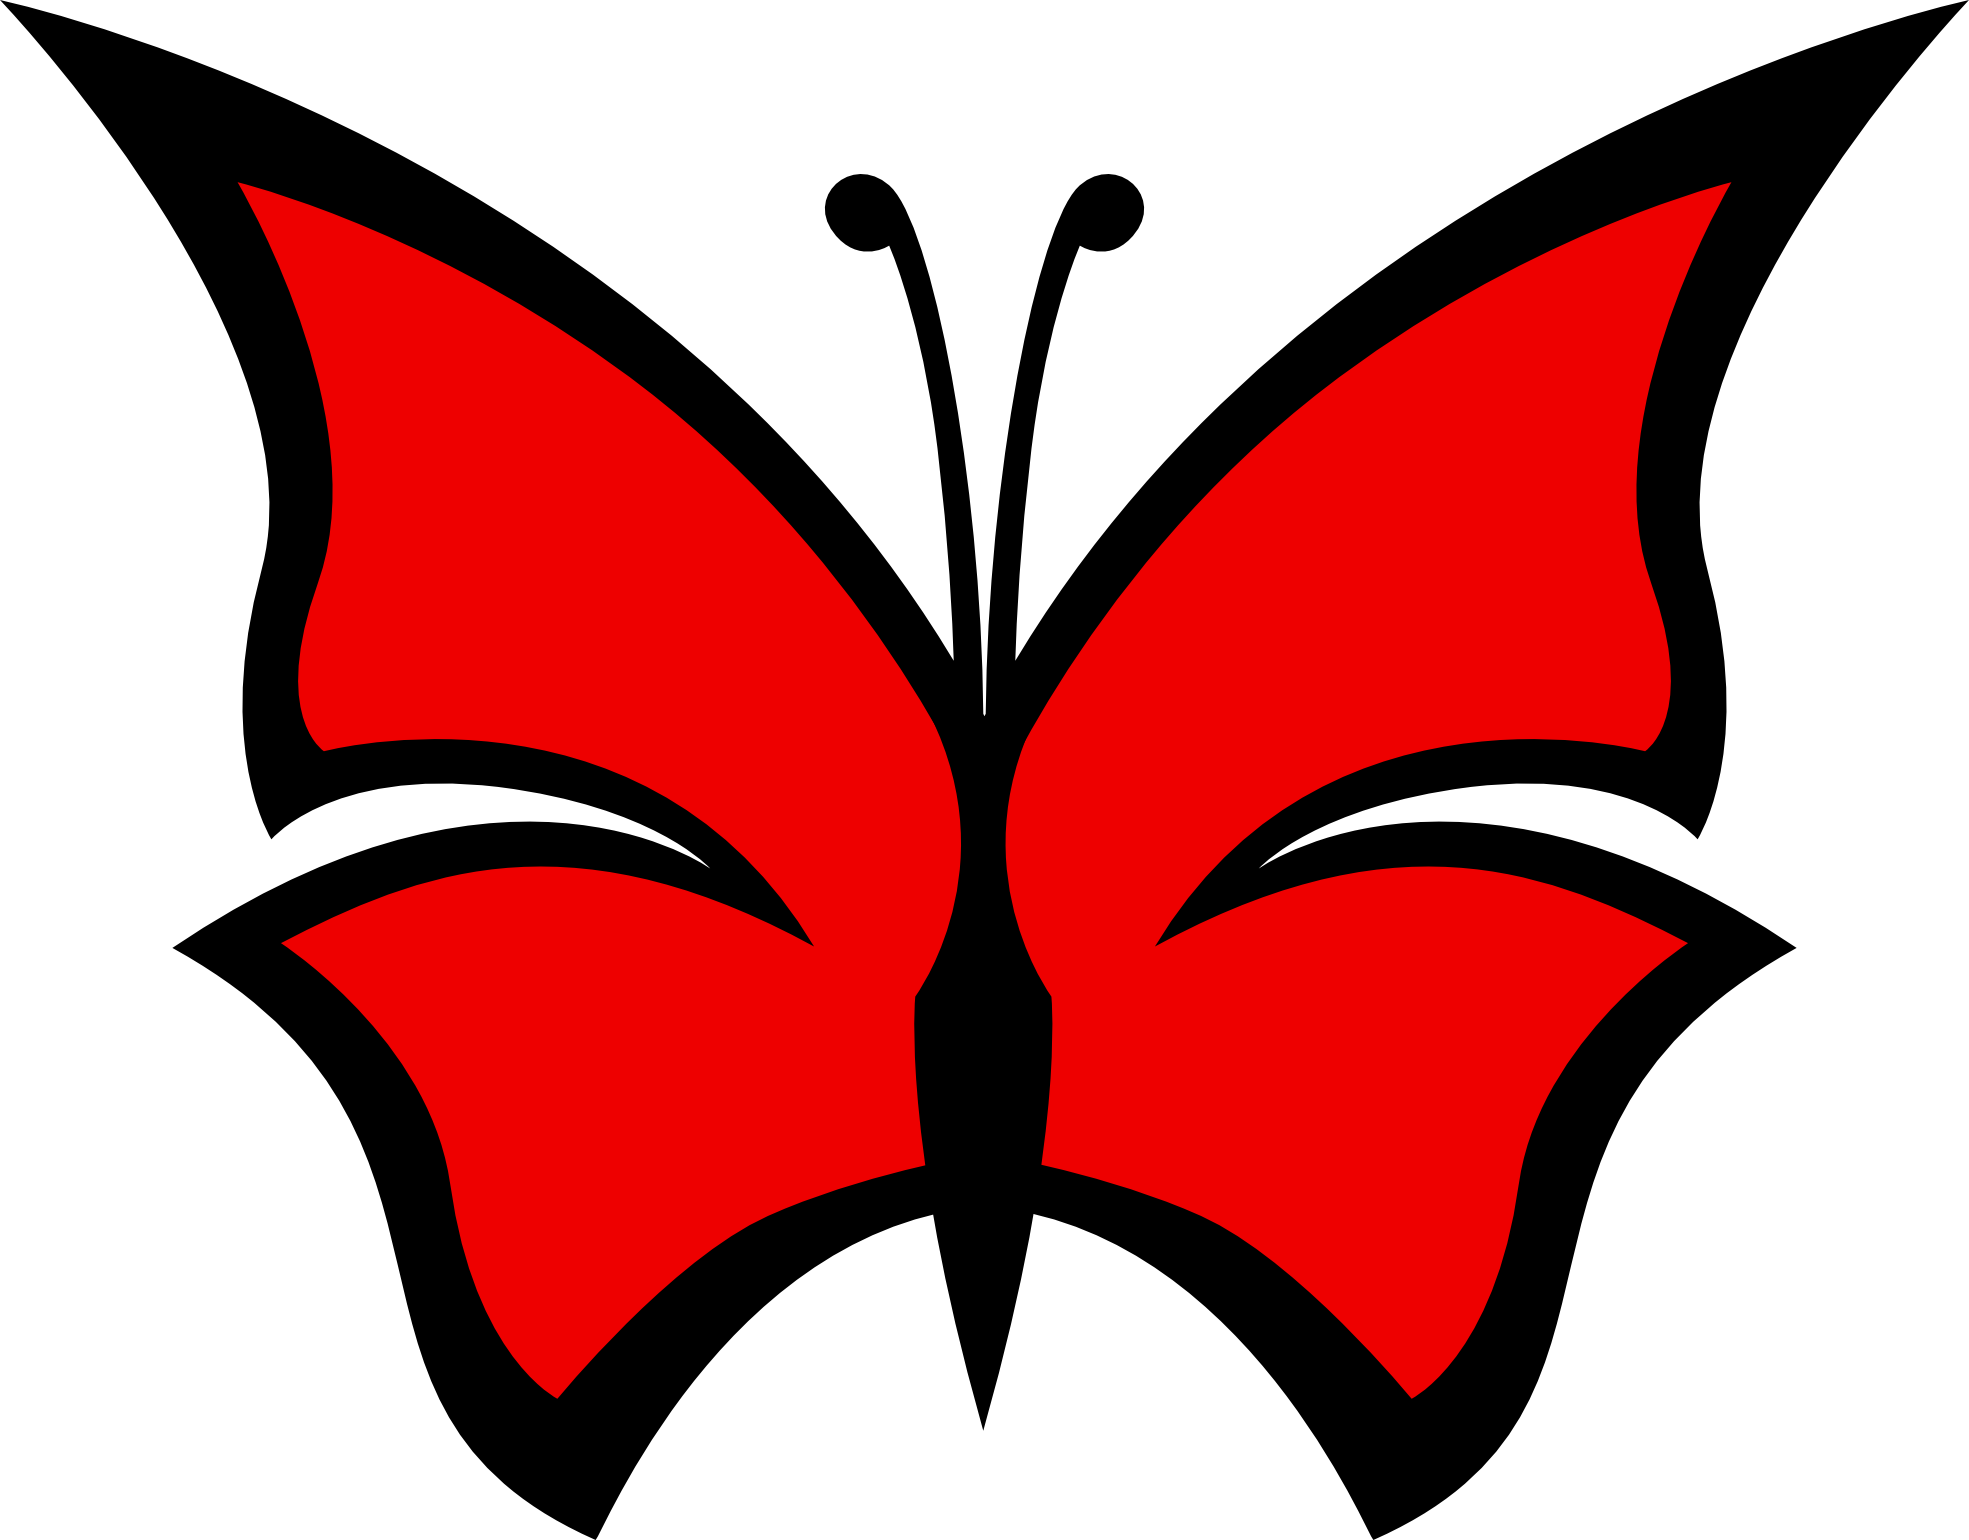 Red Butterfly Pictures - ClipArt Best